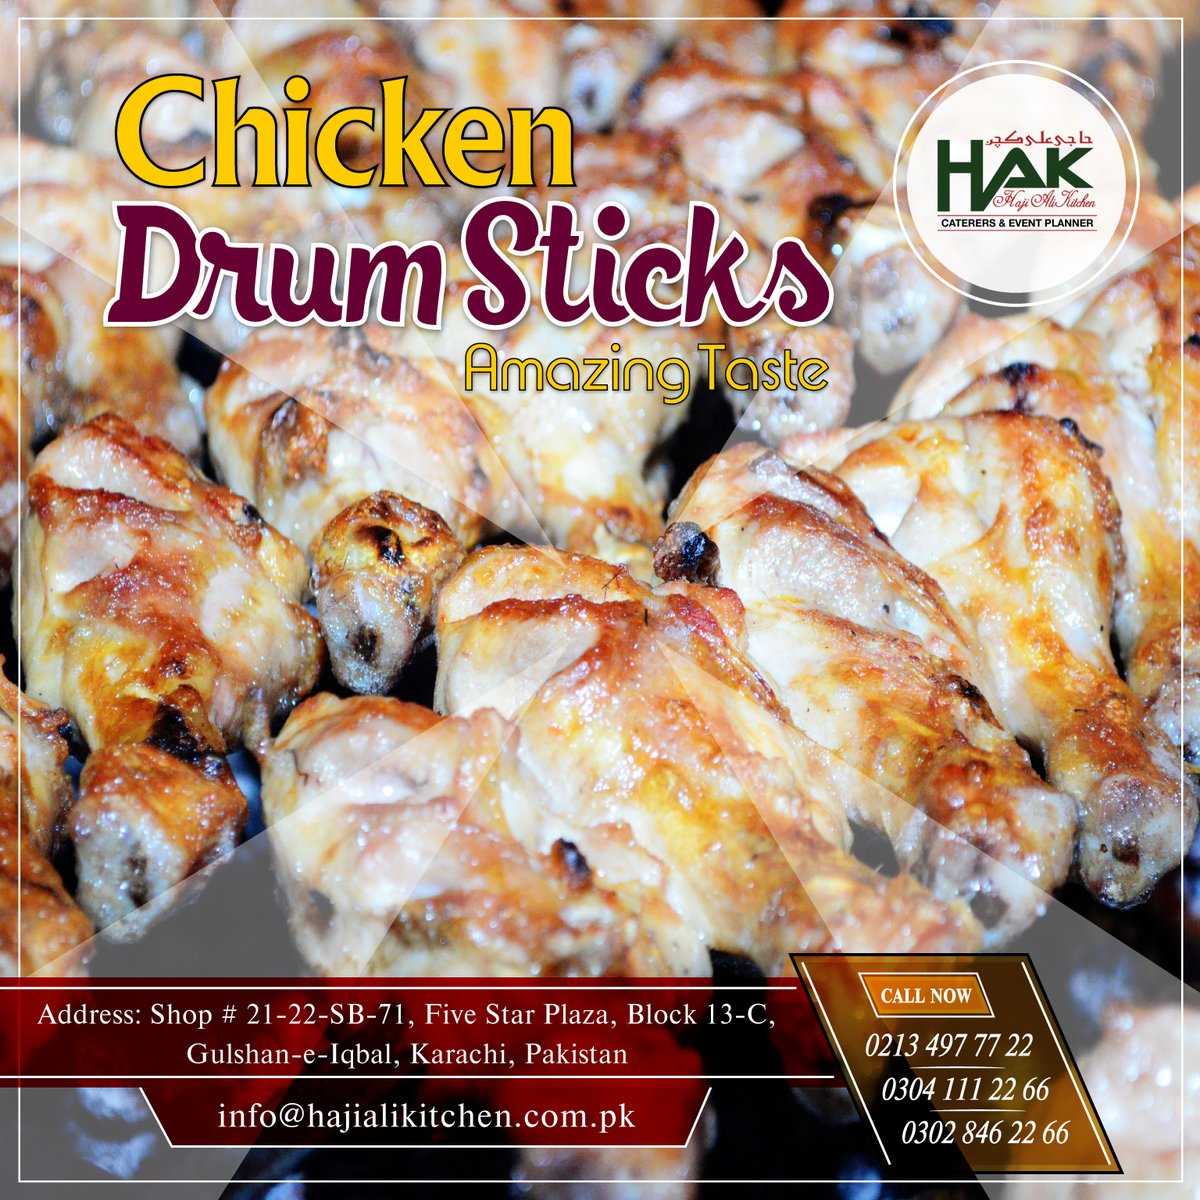 #HAK are offering some Spicy #Chicken #Drum_Sticks with rich taste & mouthwatering combination of spices & flavors. Book your orders Call Now: 021-34977722, 0304-1112266 or visit:   #Foodie #BBQ #Tasty #Catering #Tikka #Spicy #Wedding #Corporate #Party #Hot